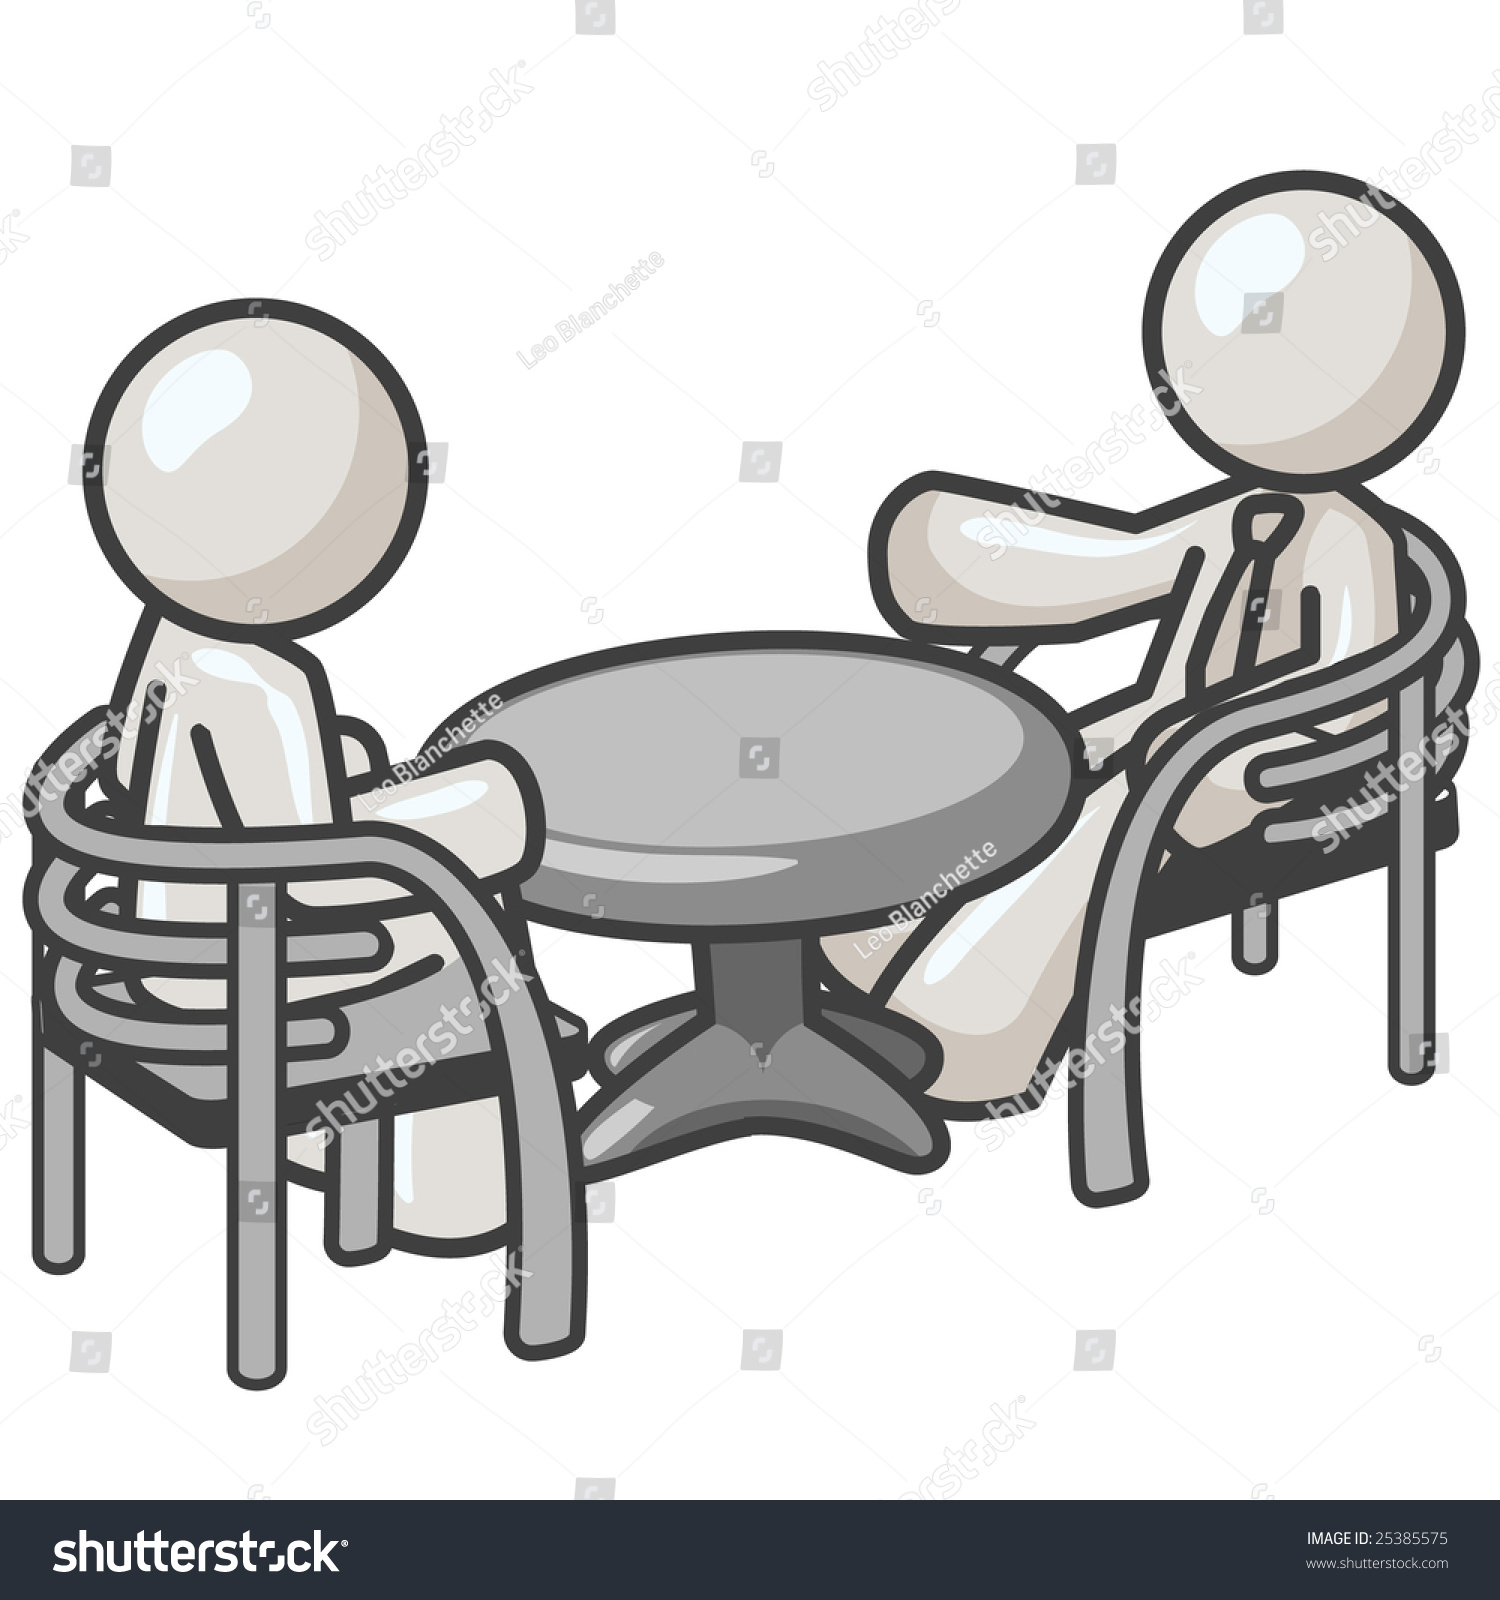 Consultant Clip Art : Men at a table consulting over matters stock photo